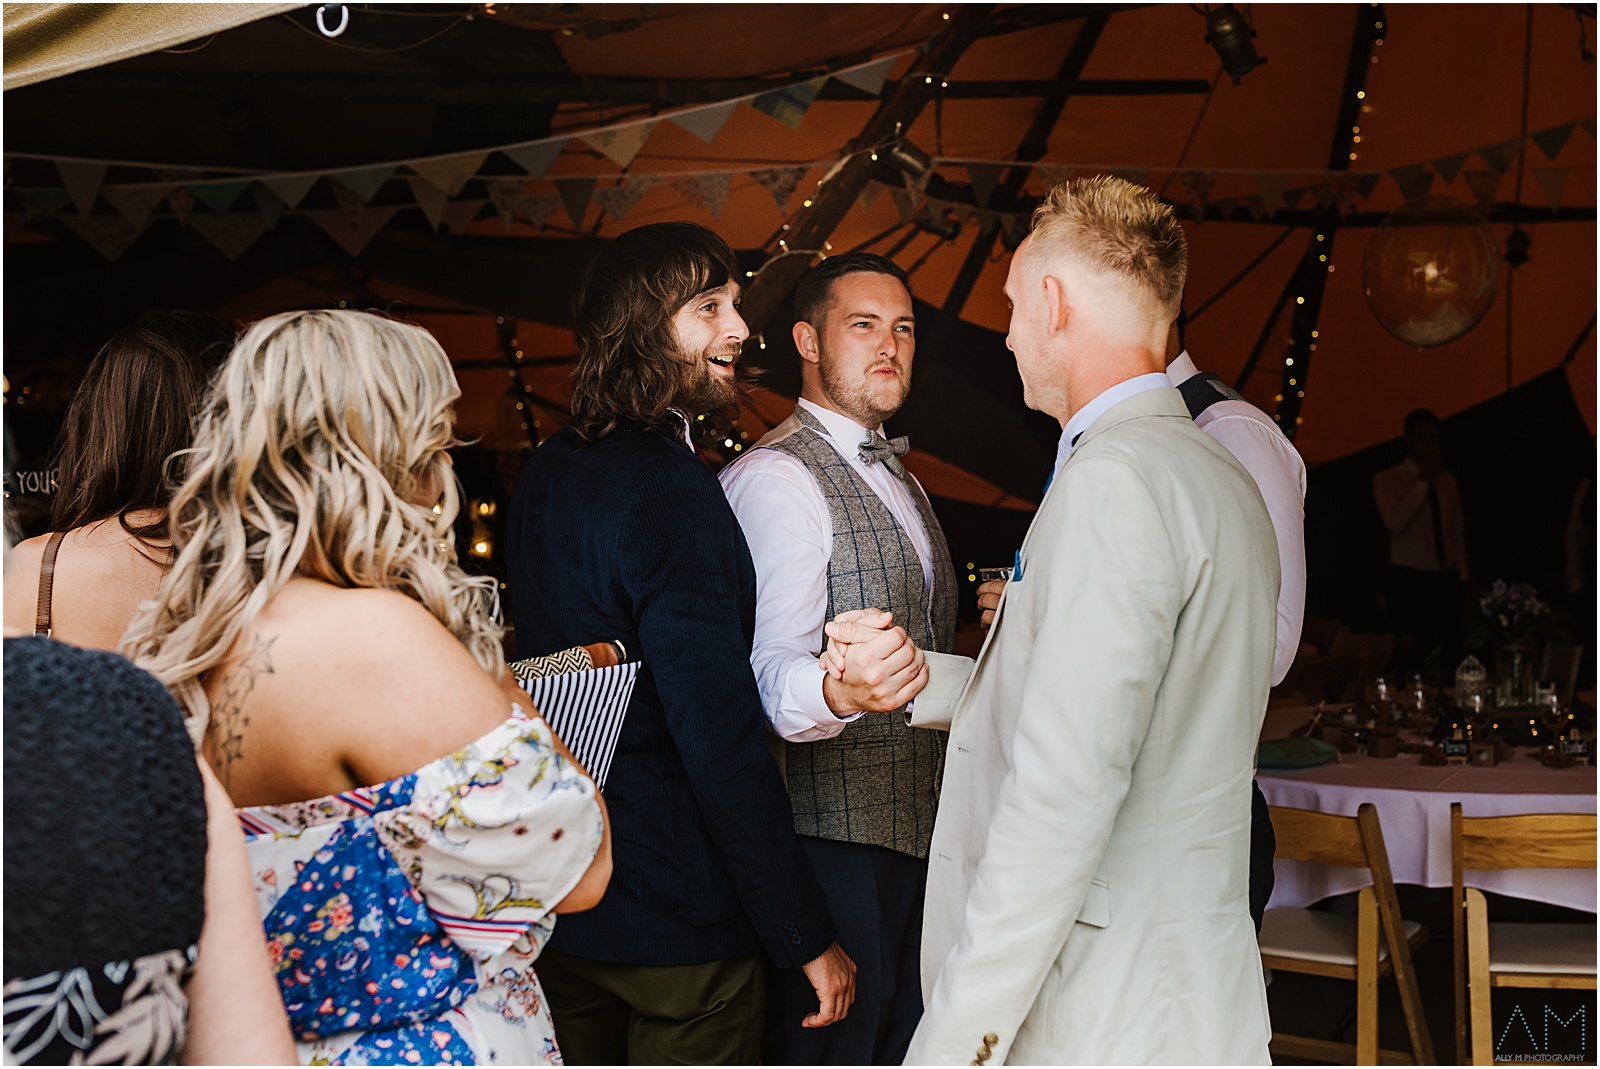 Groom shaking hand with guest